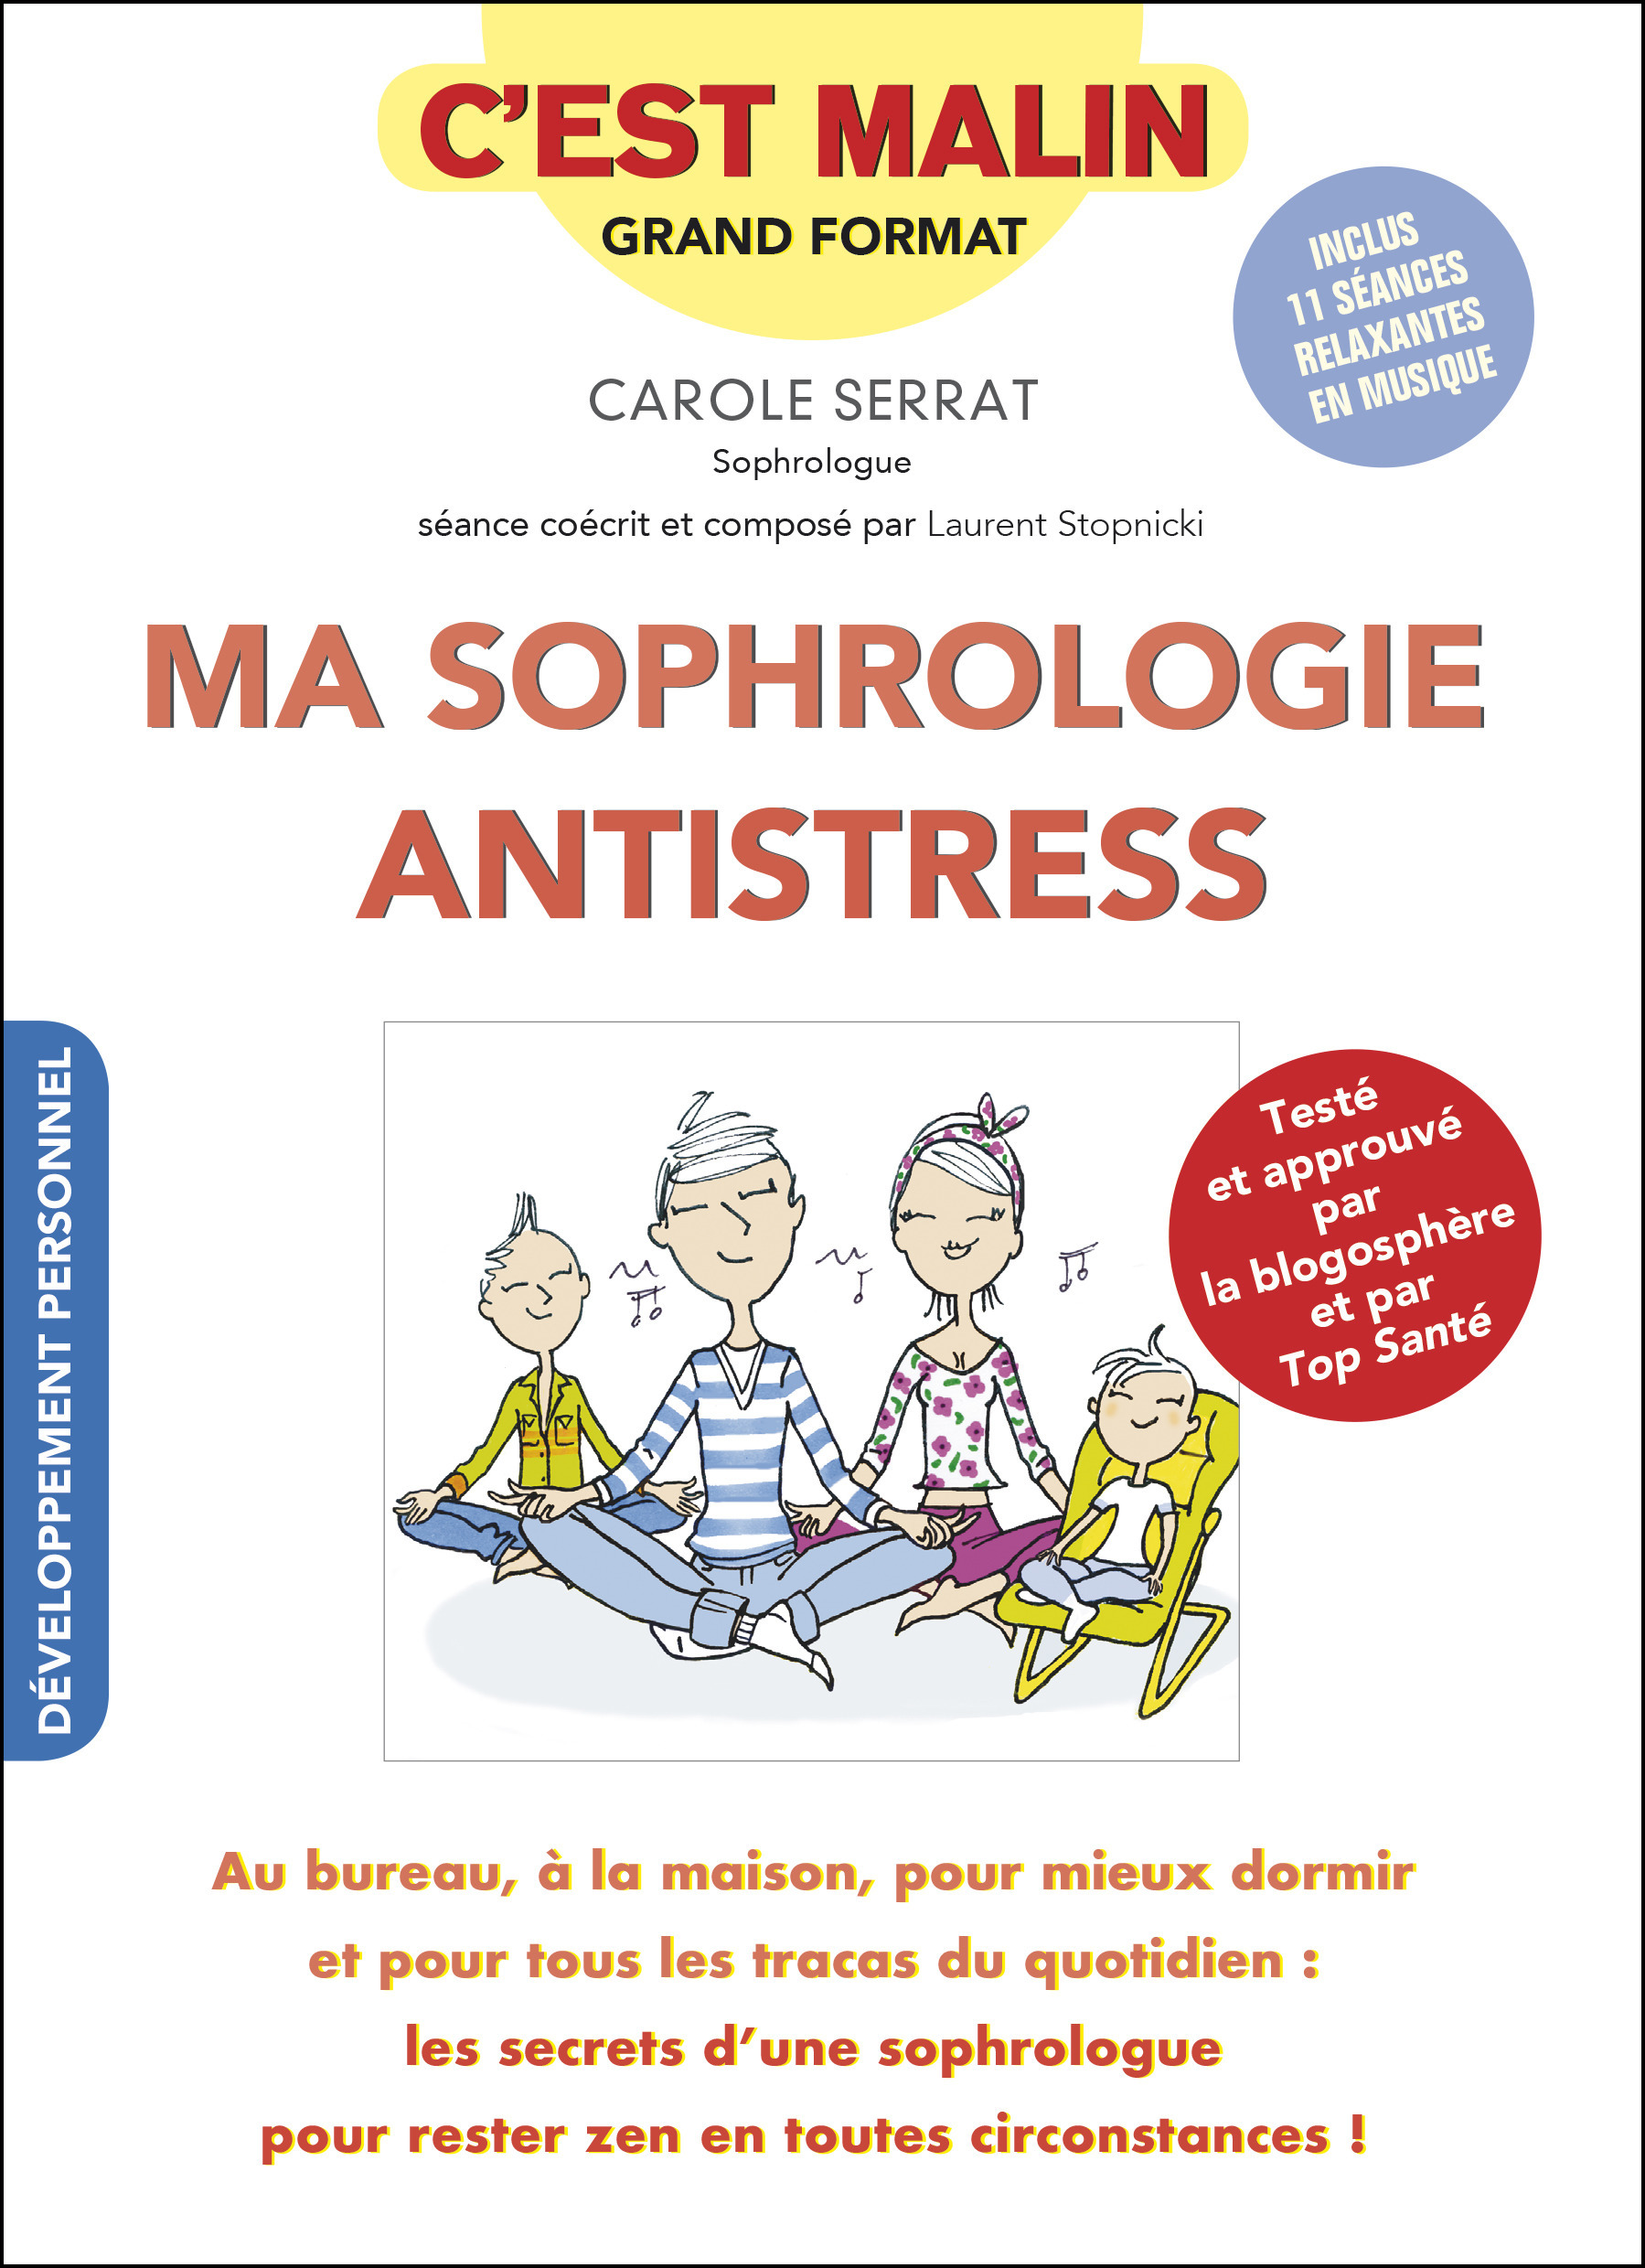 La sophrologie c'est malin ; une technique simple et naturelle pour balayer fatigue, stress, tensions...